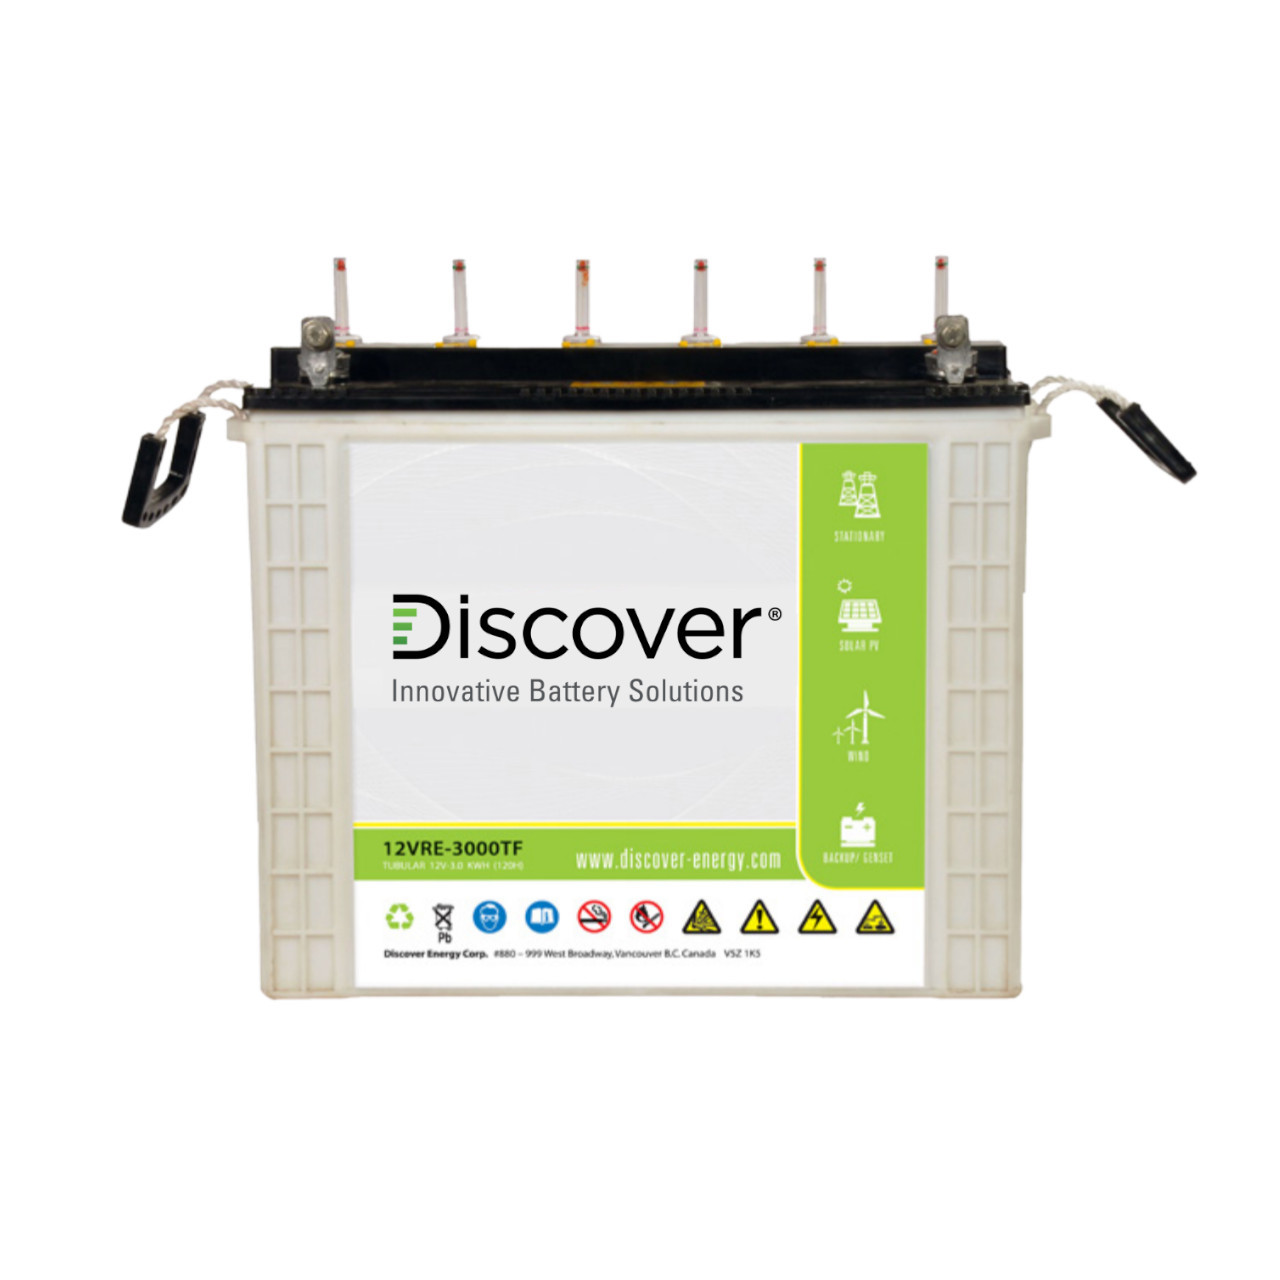 Discover Energy - SOPzS 12VRE-3000TF-L - Front